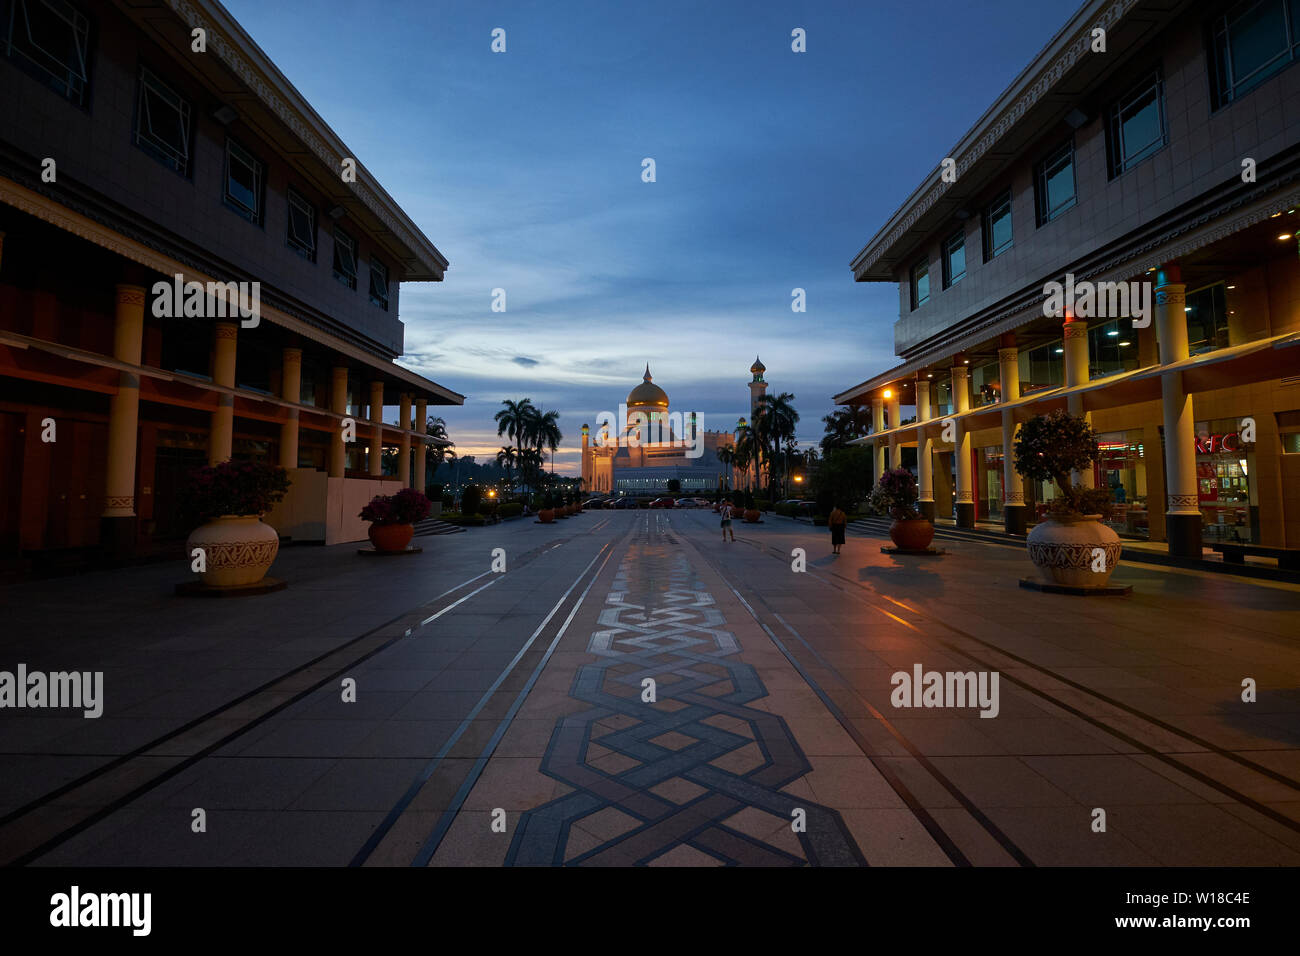 Sunset view of the Omar Ali Saifuddien mosque in downtown Bandar Seri Begawan,Brunei. View through the Yayasan shopping complex. - Stock Image